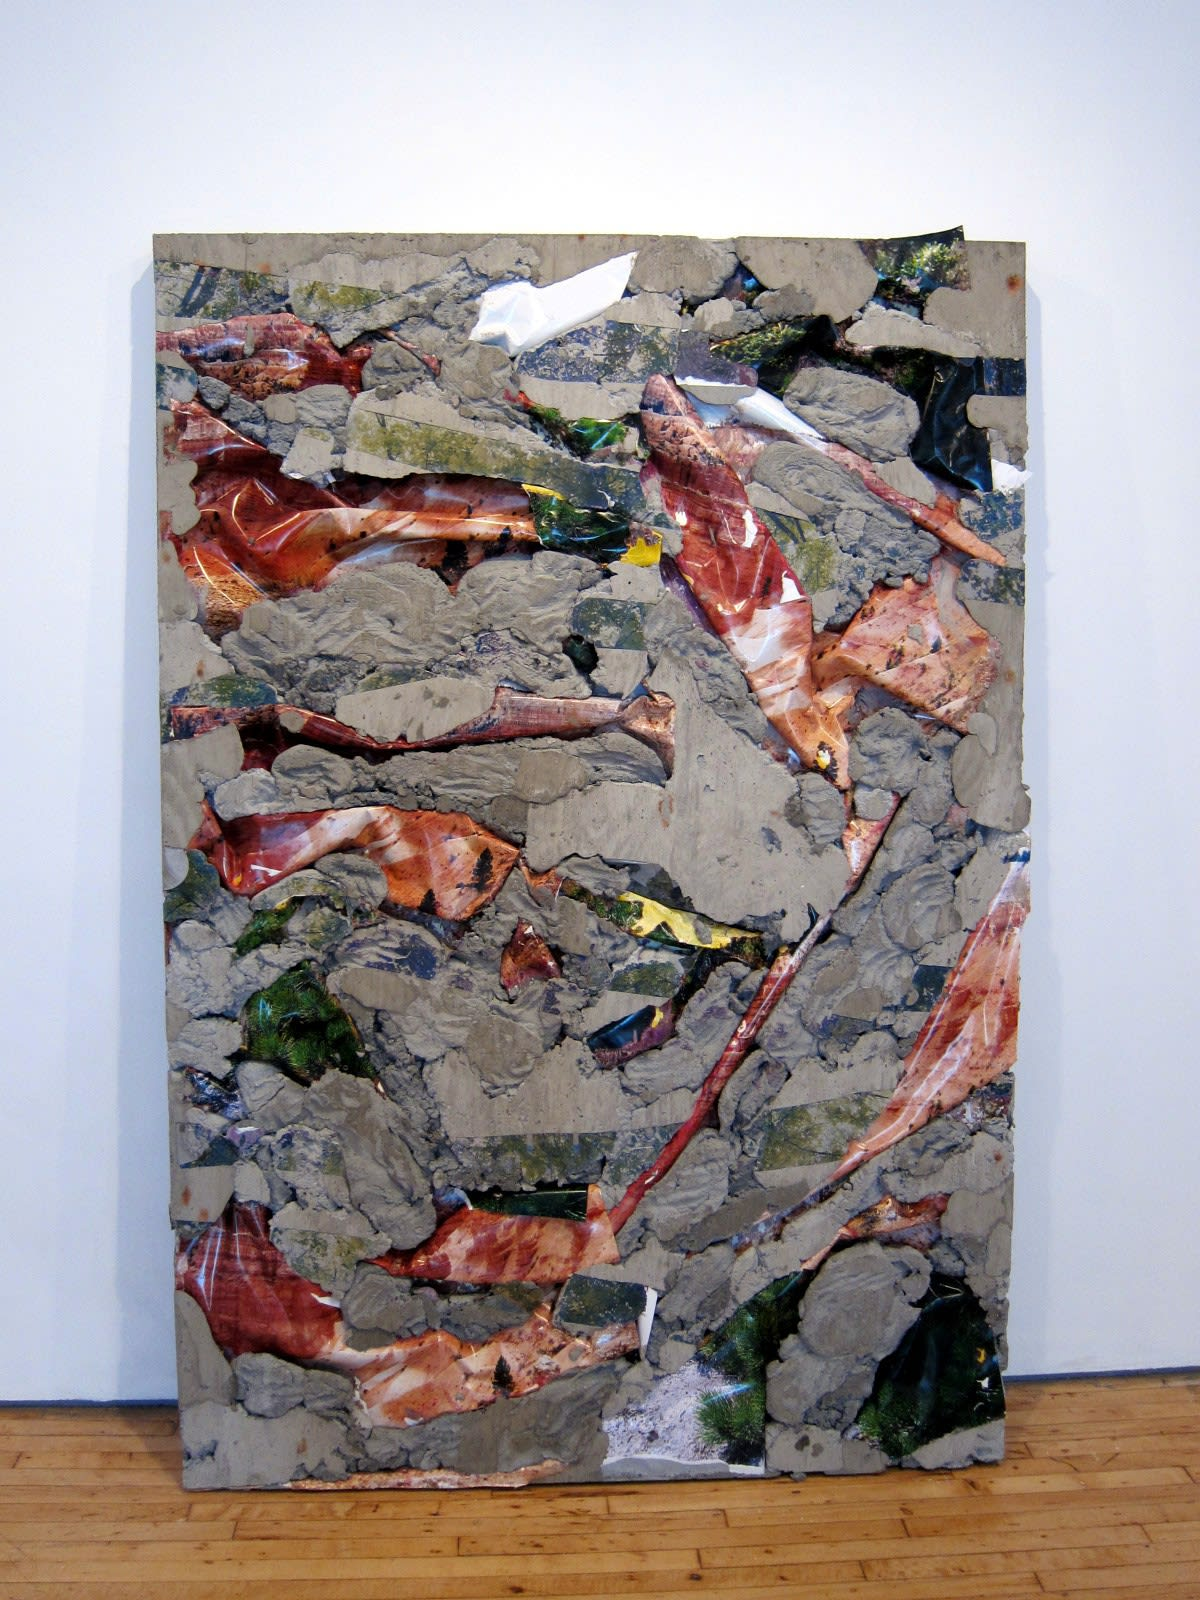 Letha Wilson at Art in General